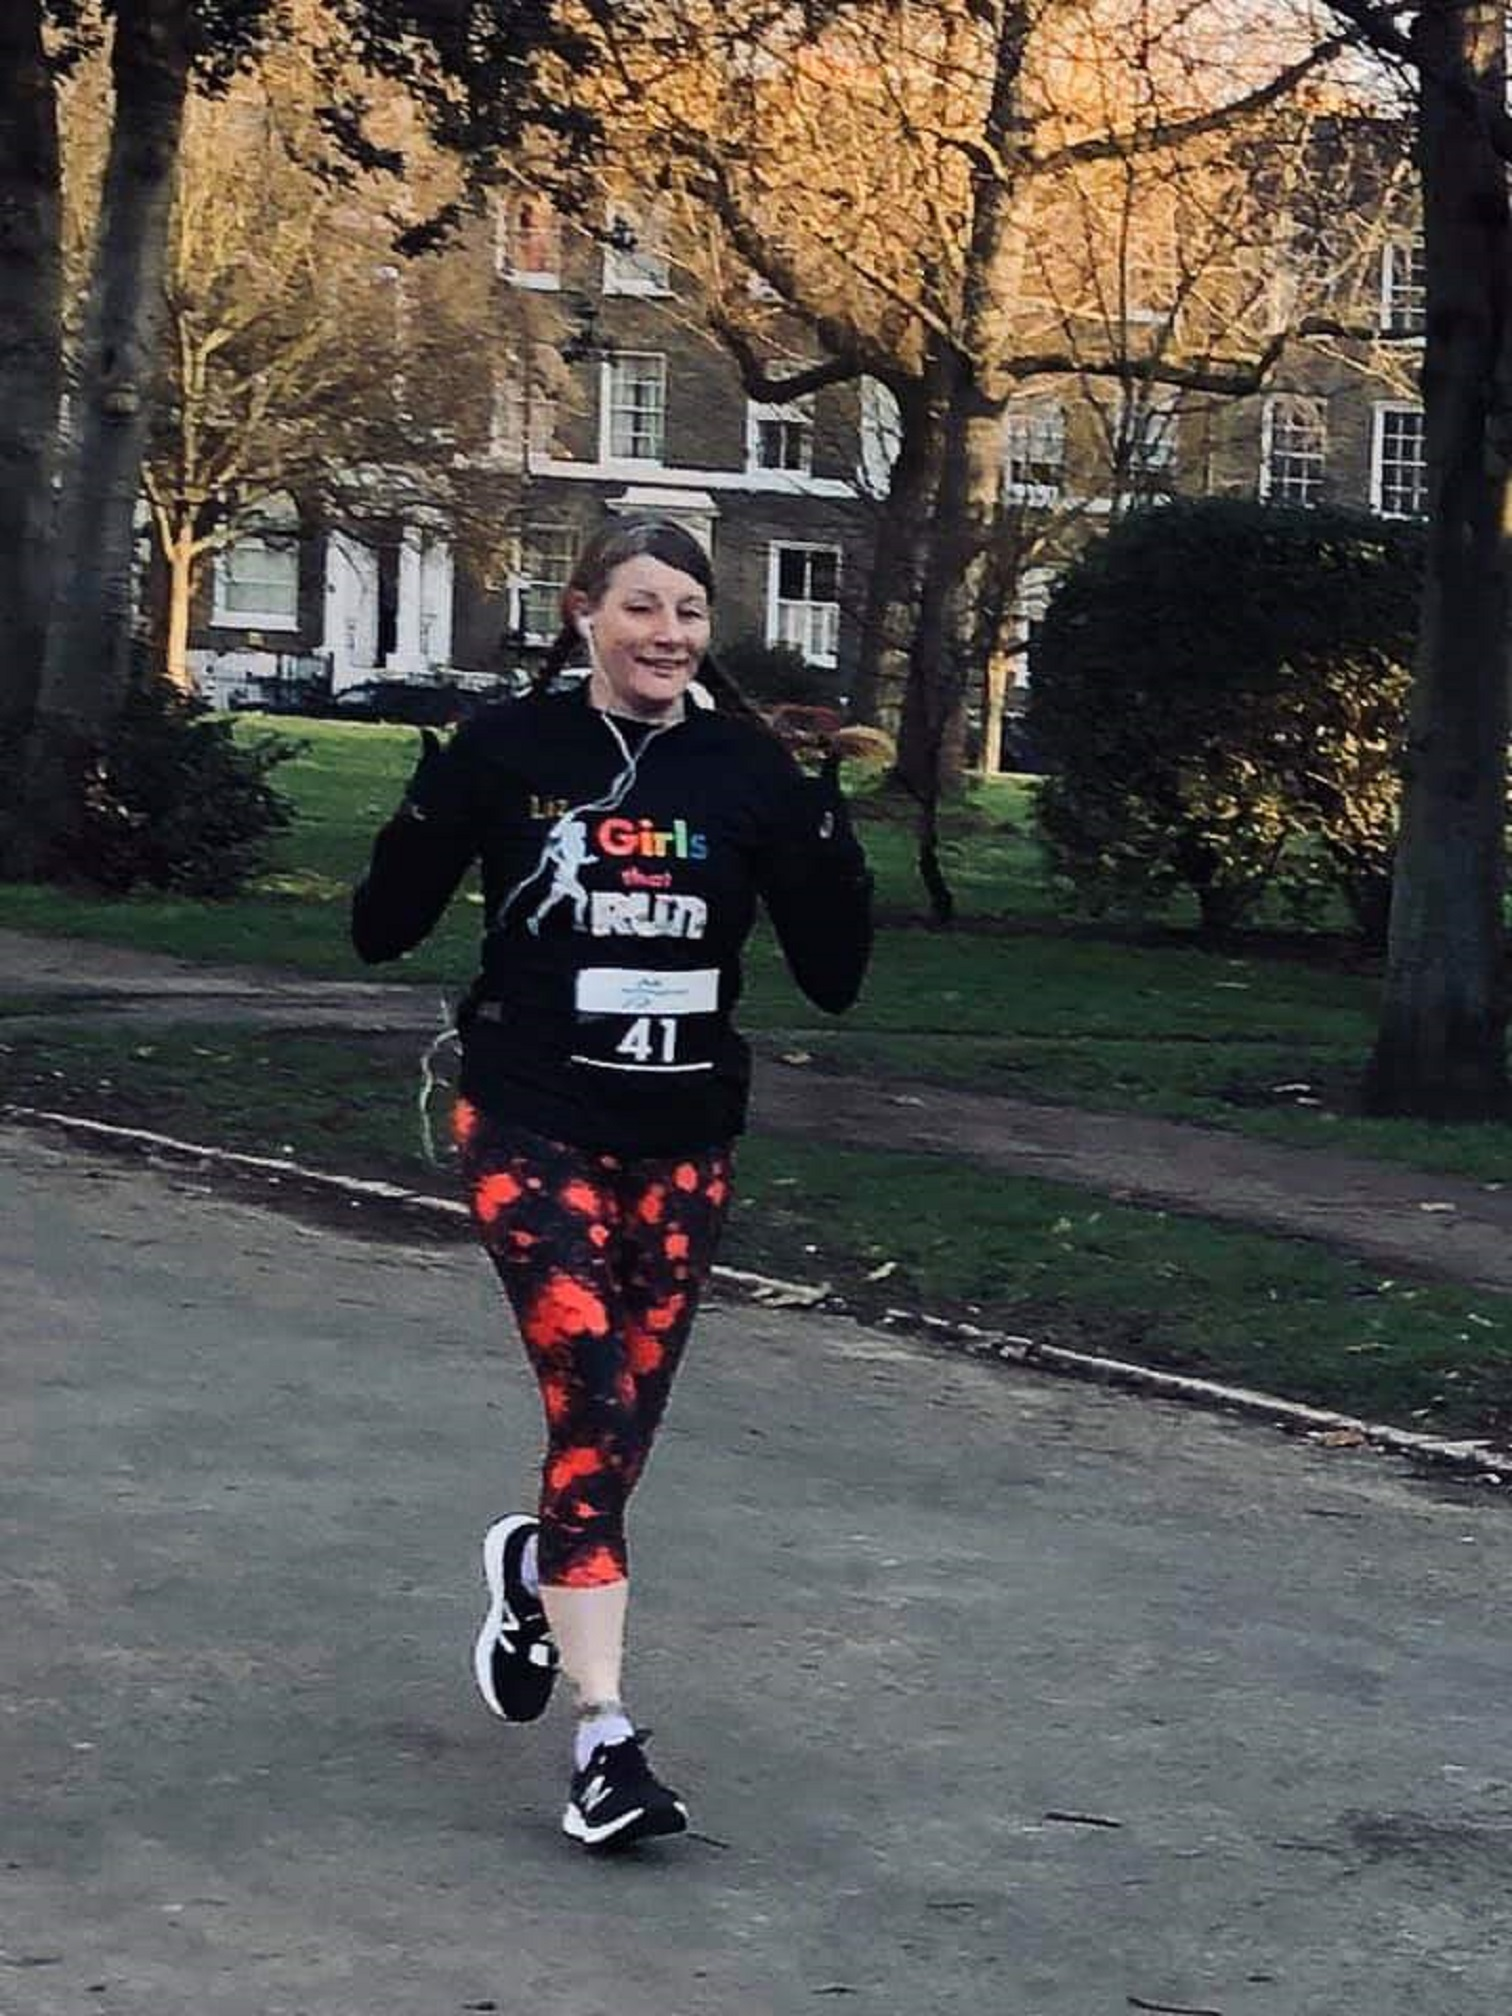 Liz Ayres, who ran as a pacer during the 2019 London Marathon